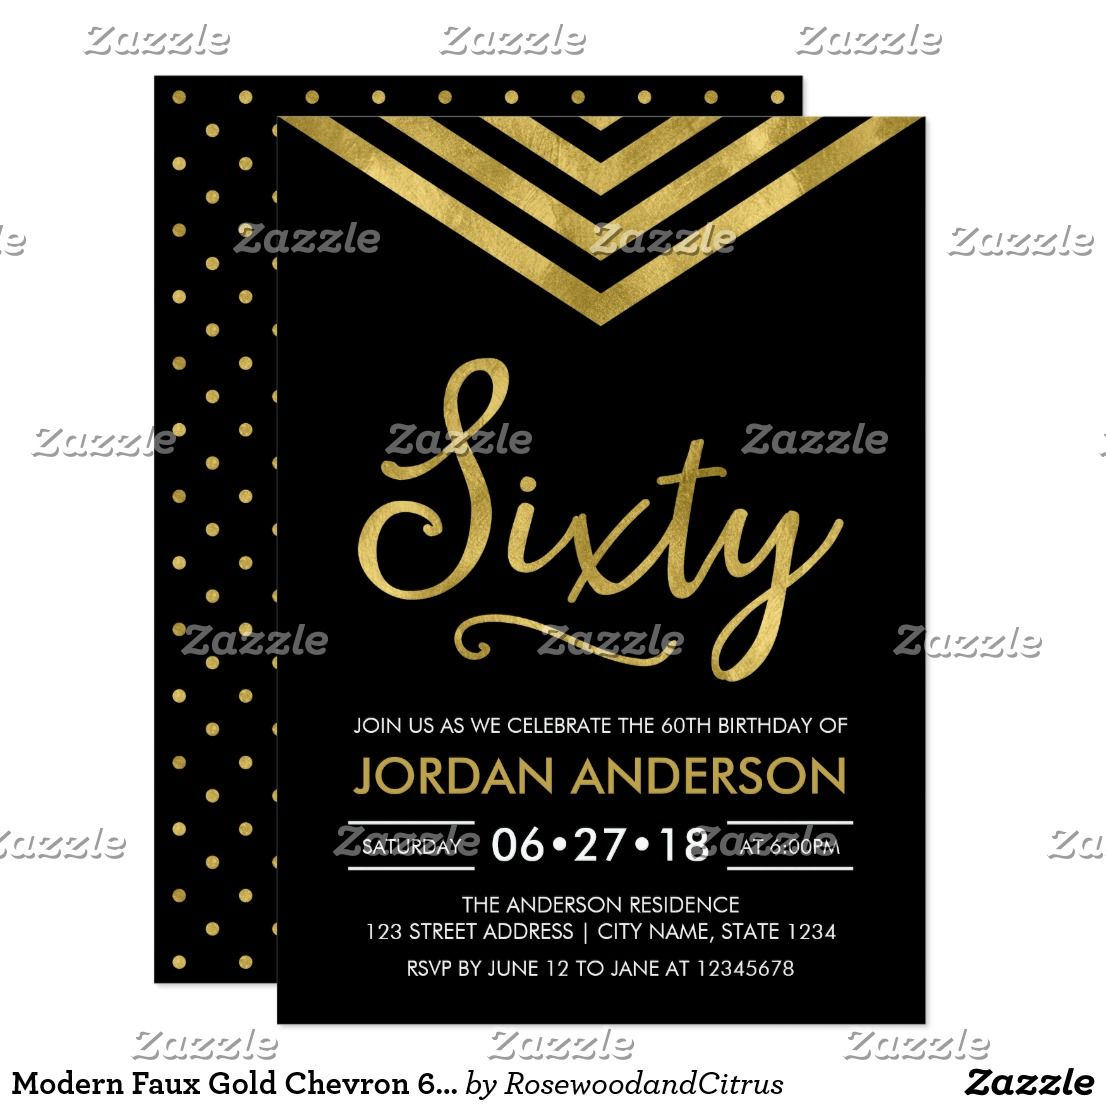 Modern Faux Gold Chevron 60th Birthday Party Invitation | Pinterest ...